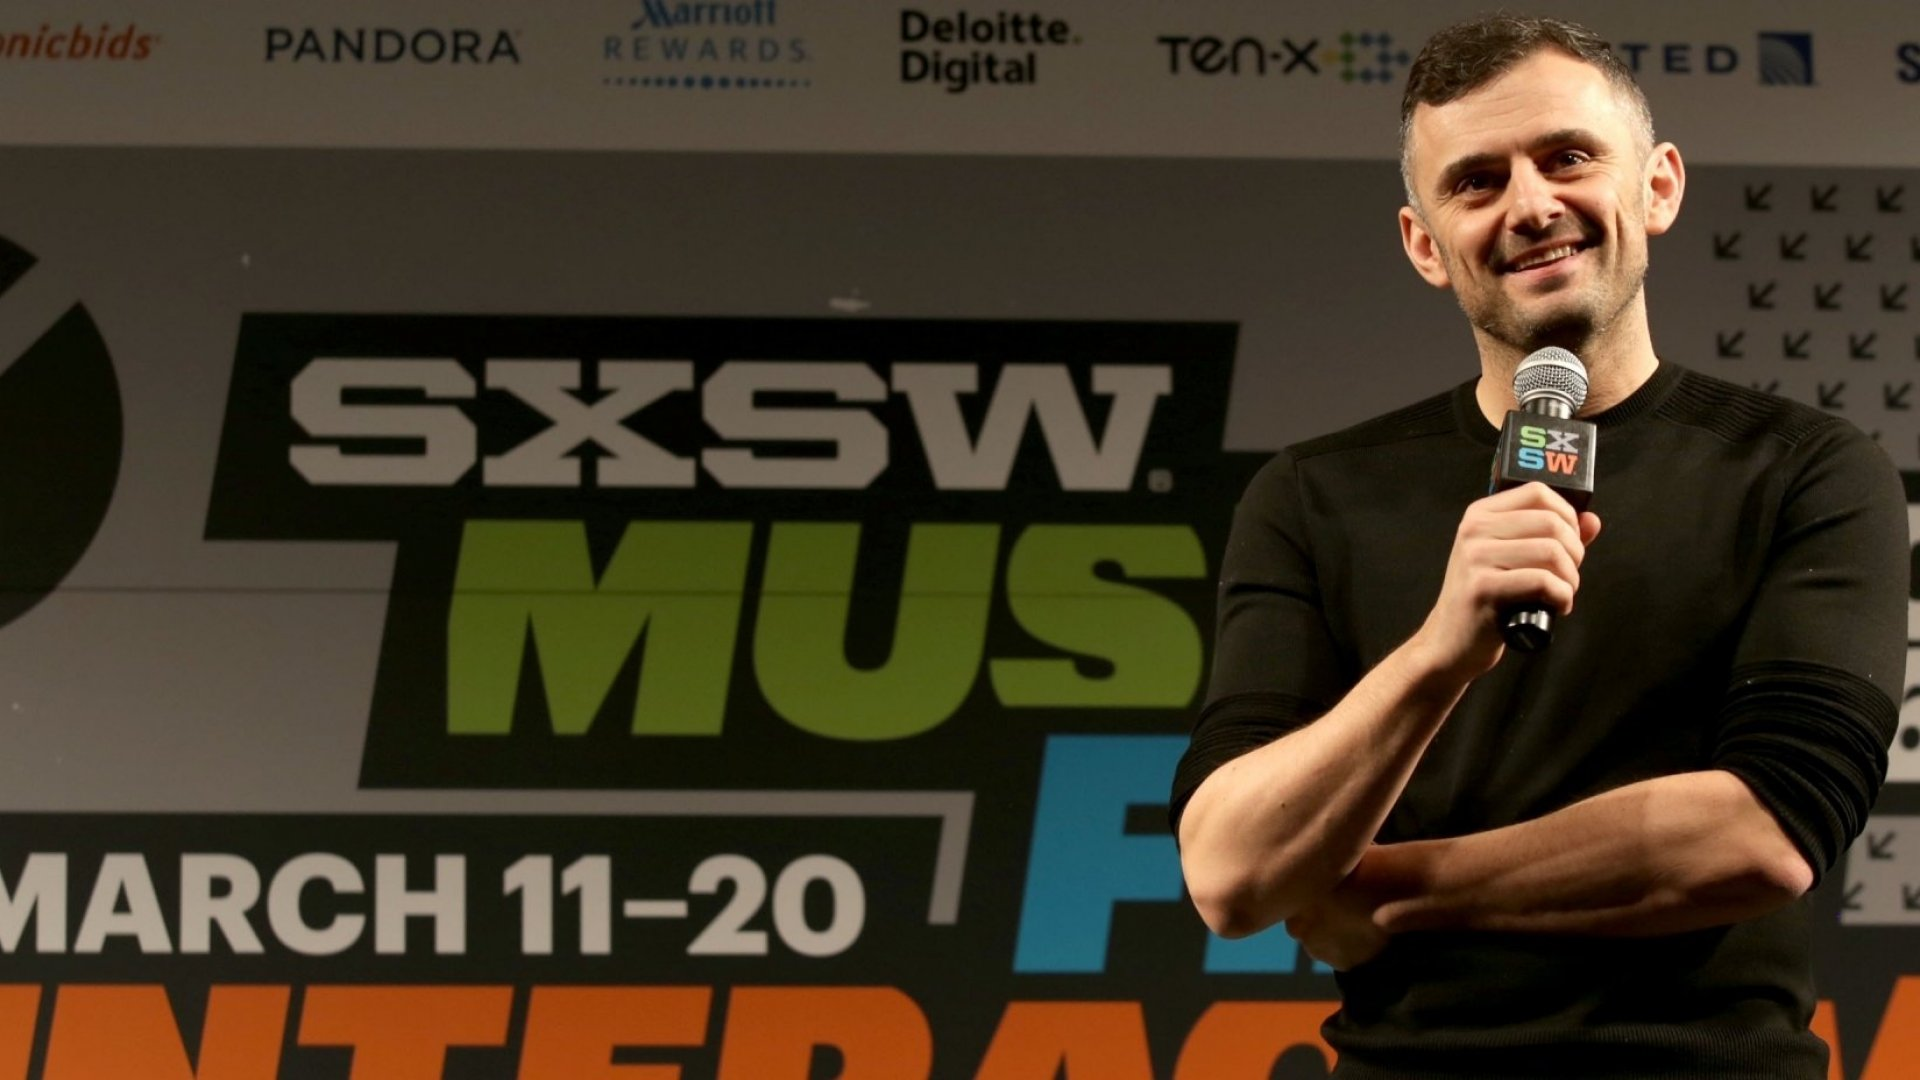 6 Killer Personal Branding Tips From Gary Vaynerchuk (and Other Experts)